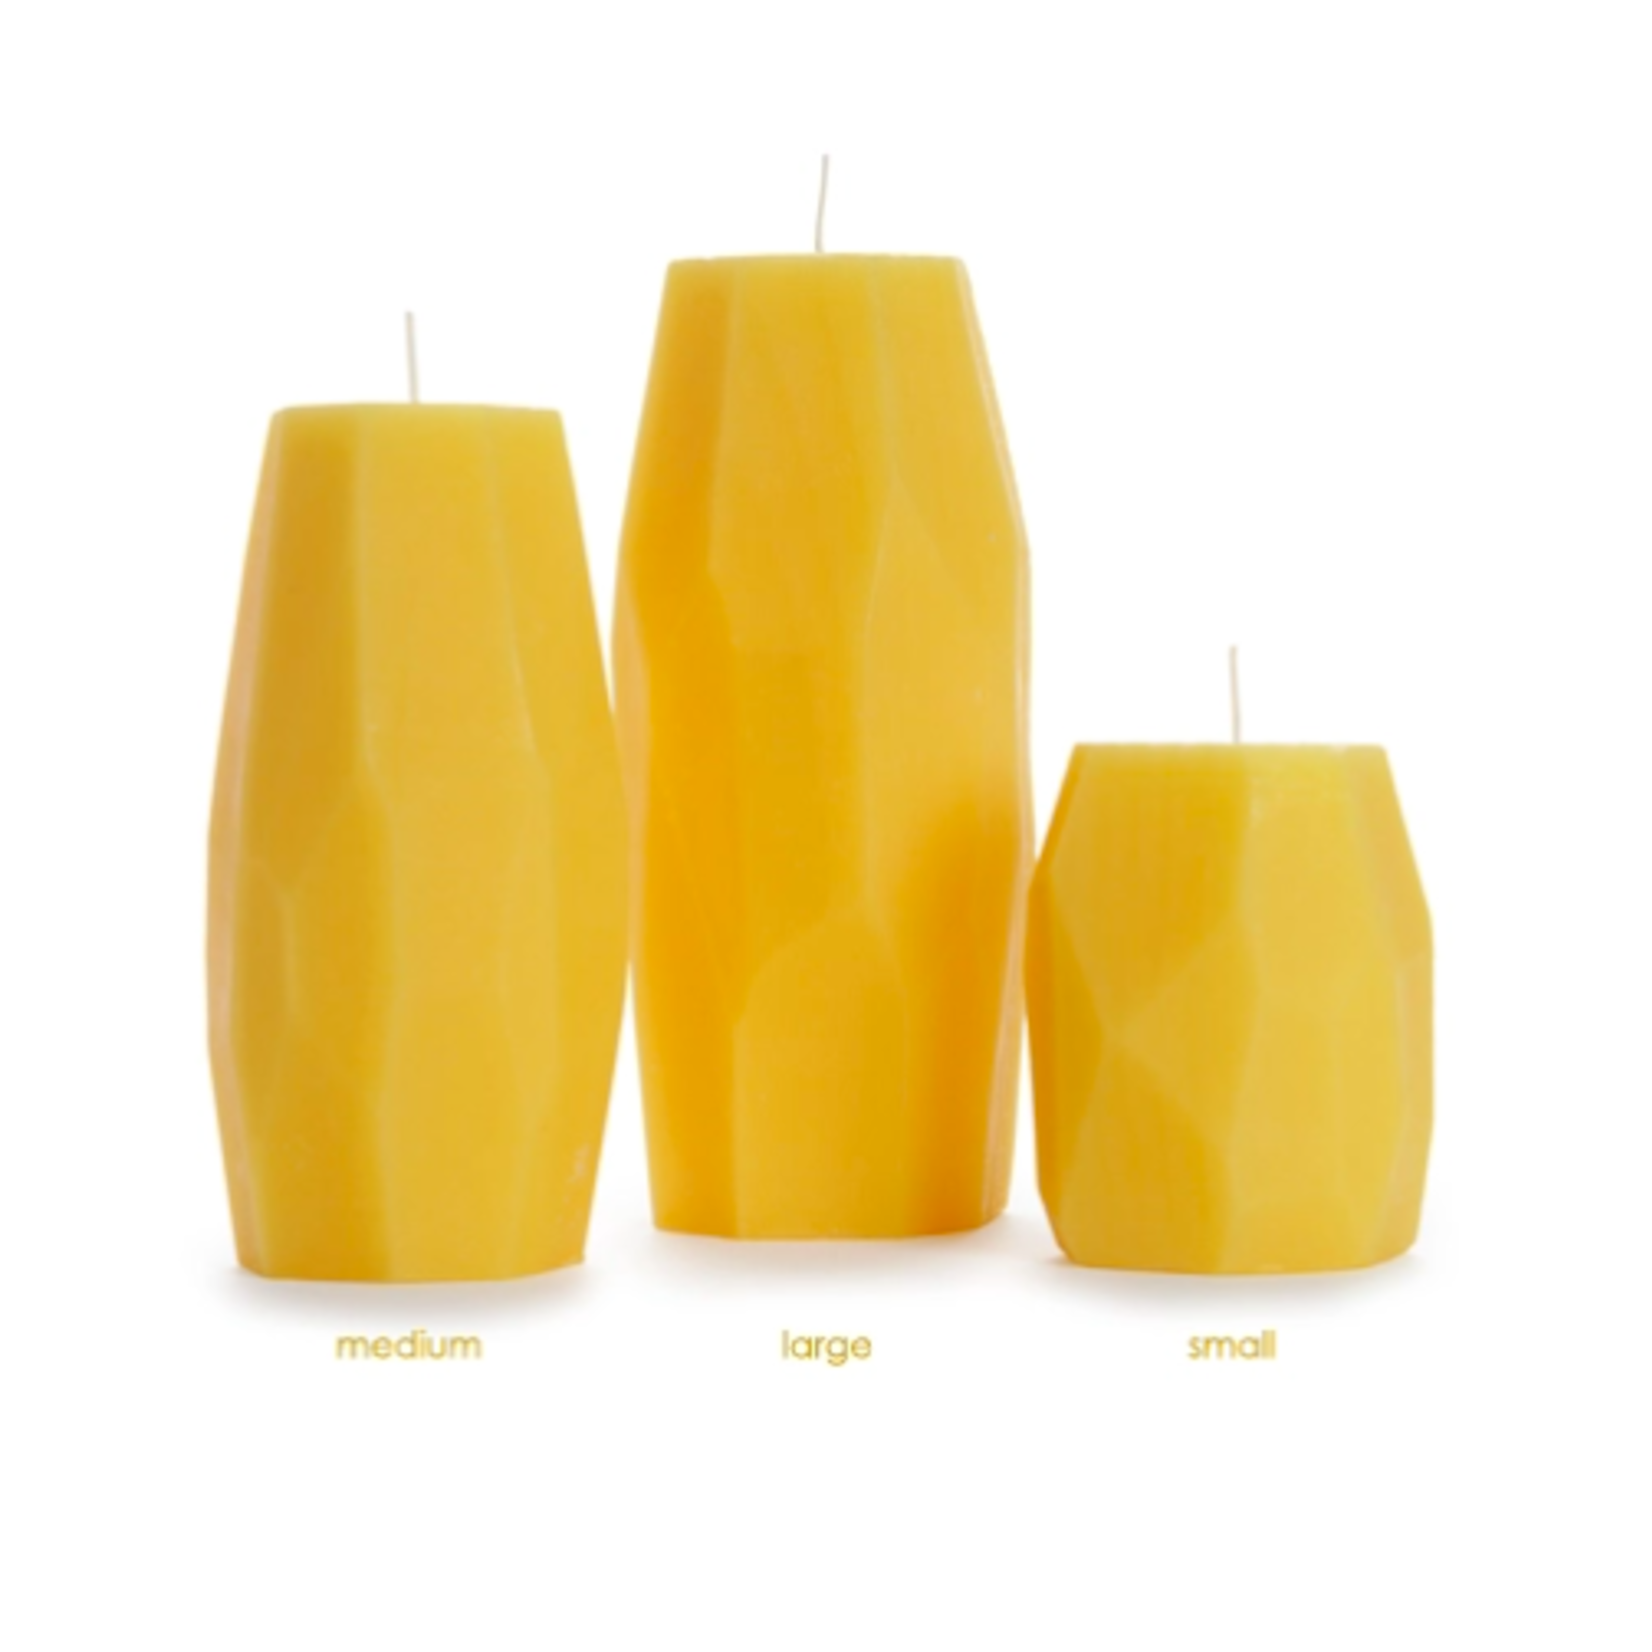 Big Dipper 100% Beeswax Faceted Pillars